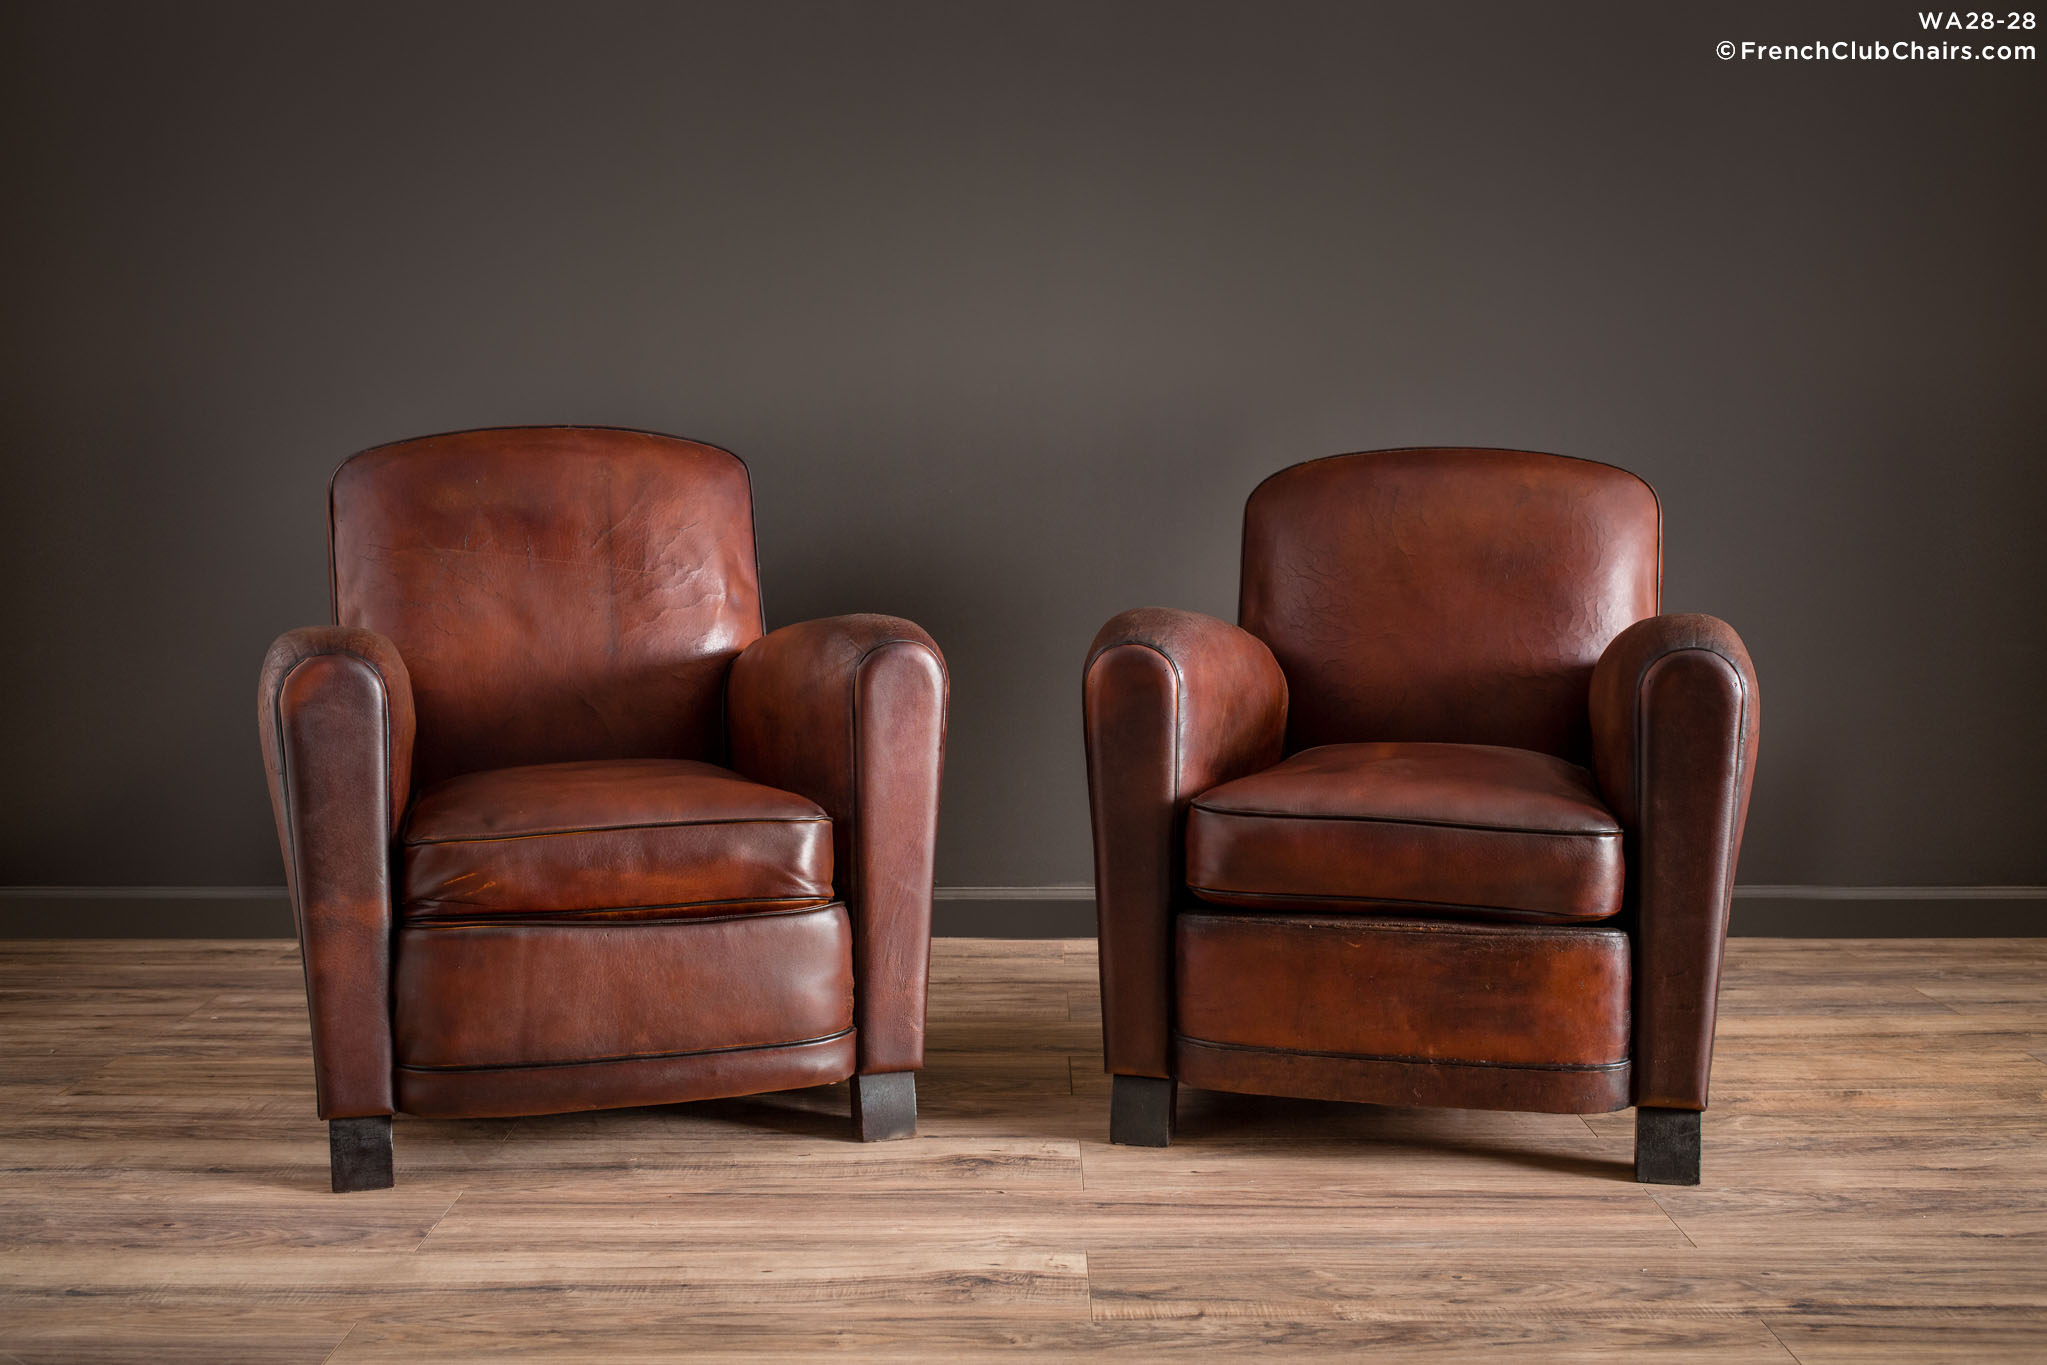 WA_28-28_La_Louvre_Library_Pair_R_1TQ1-williams-antiks-leather-french-club-chair-wa_fcccom